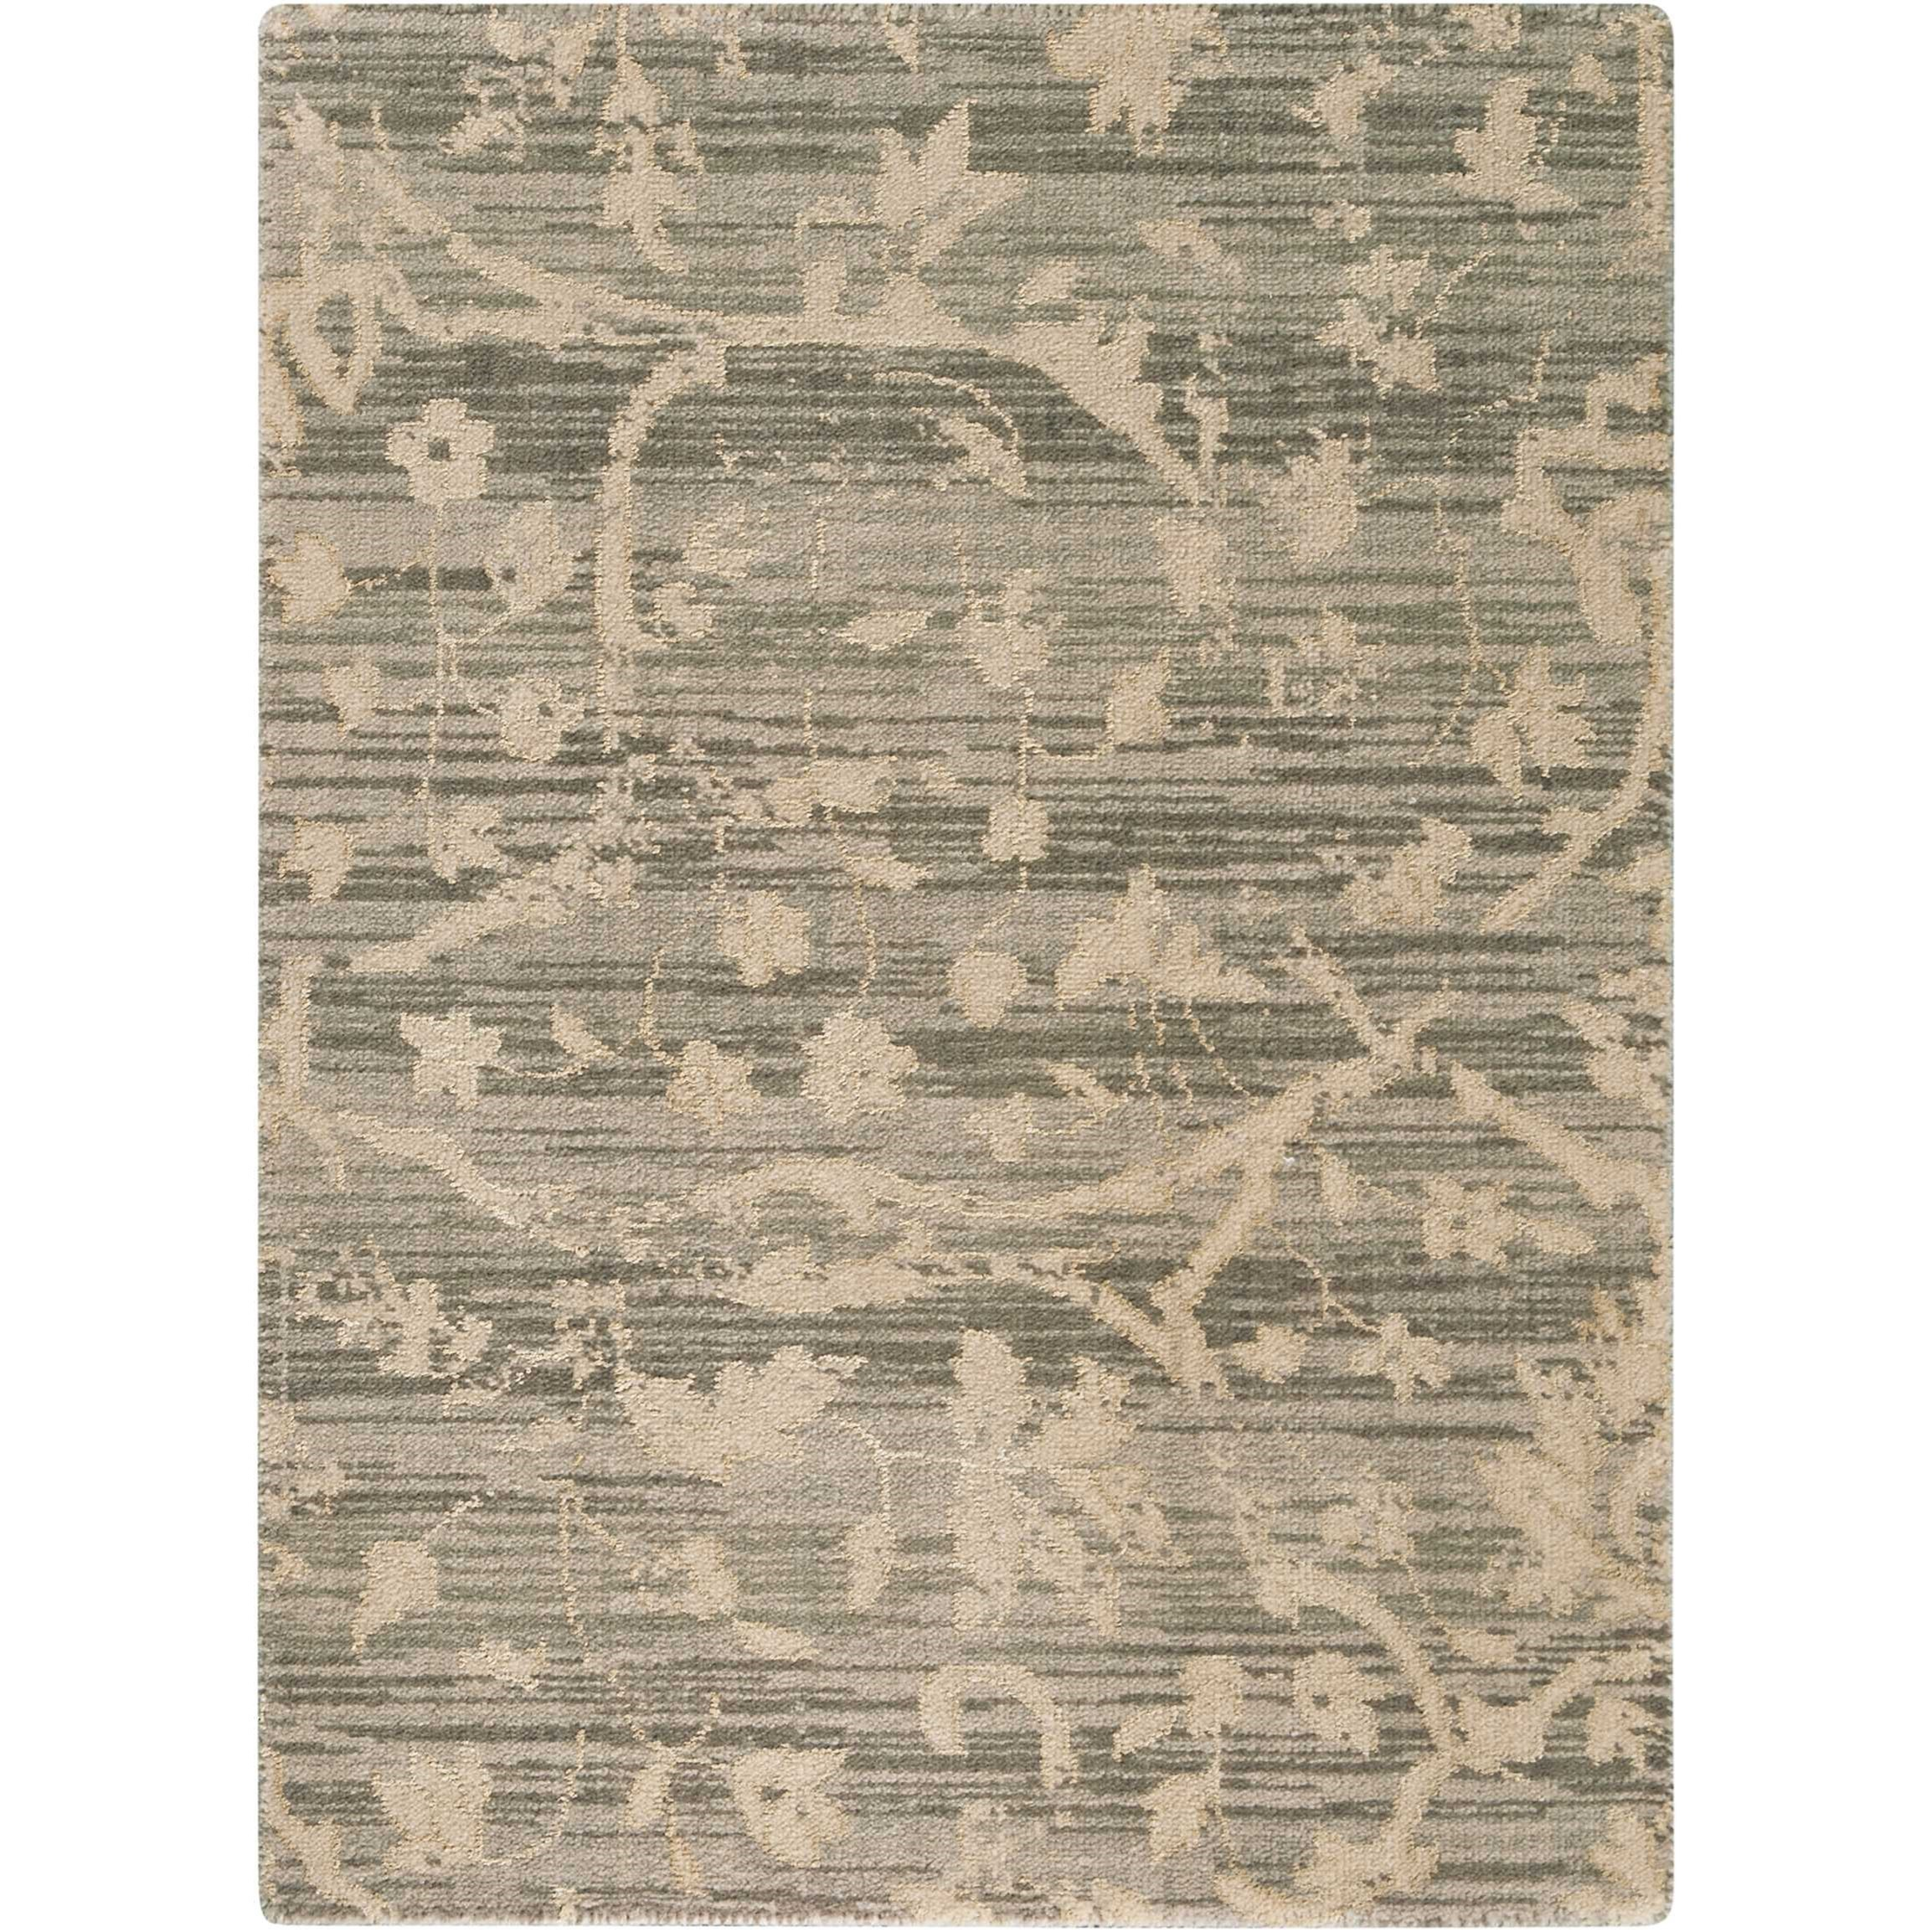 """Silk Elements 2'3"""" x 3' Taupe Rectangle Rug by Nourison at Story & Lee Furniture"""